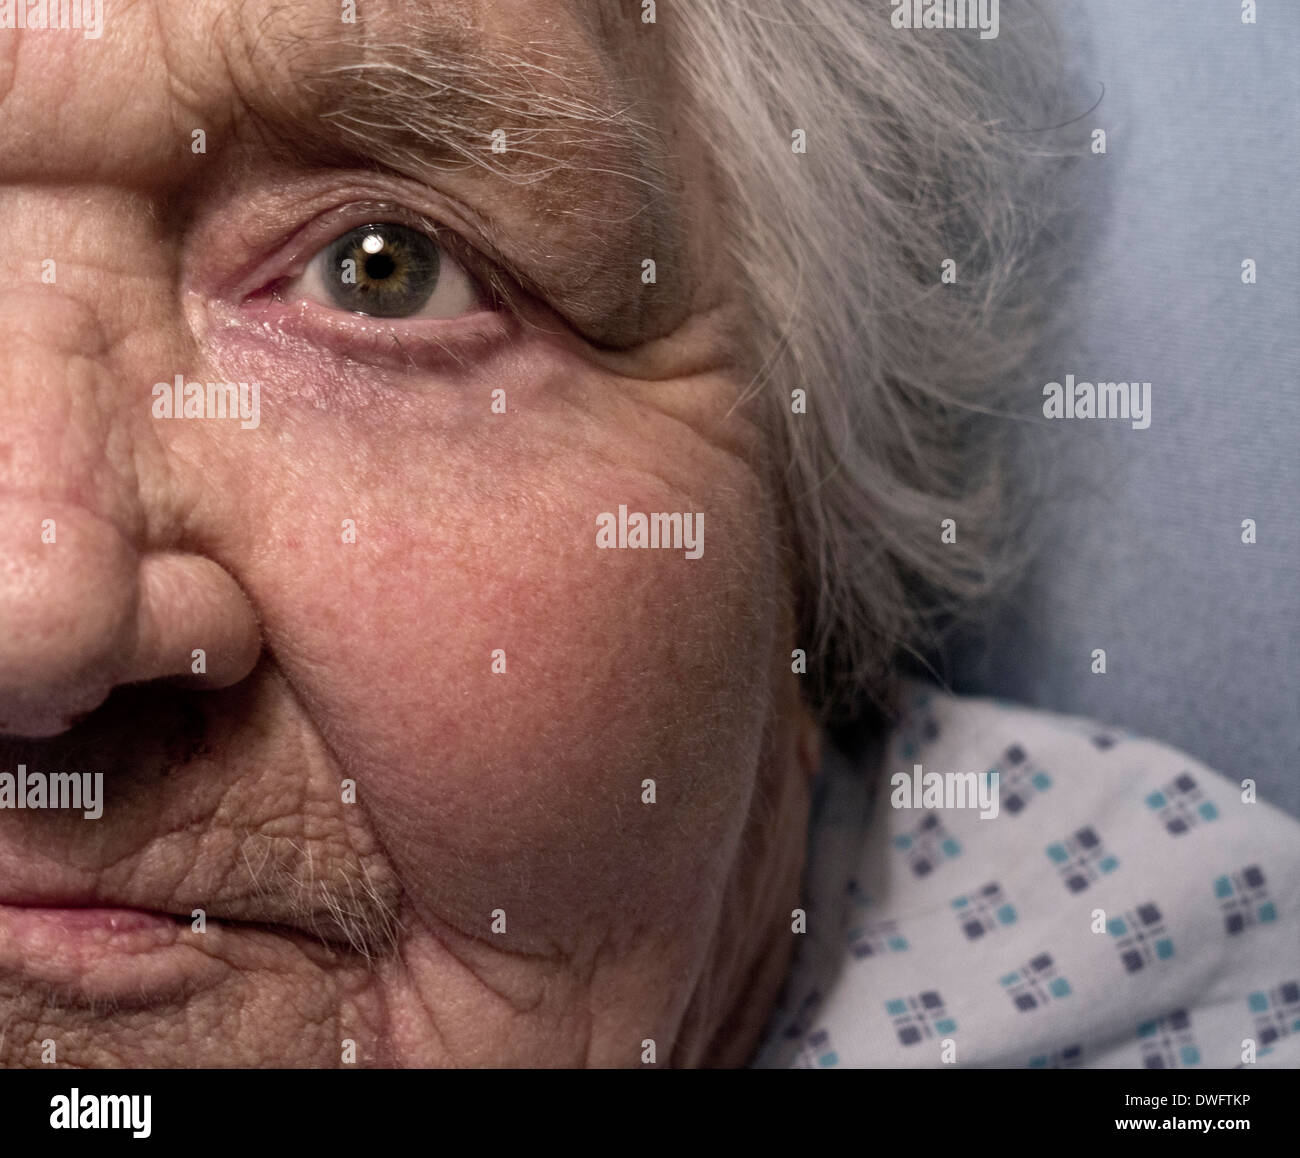 Close view on serious elderly vulnerable 100 years old lady alone in hospital bed - Stock Image